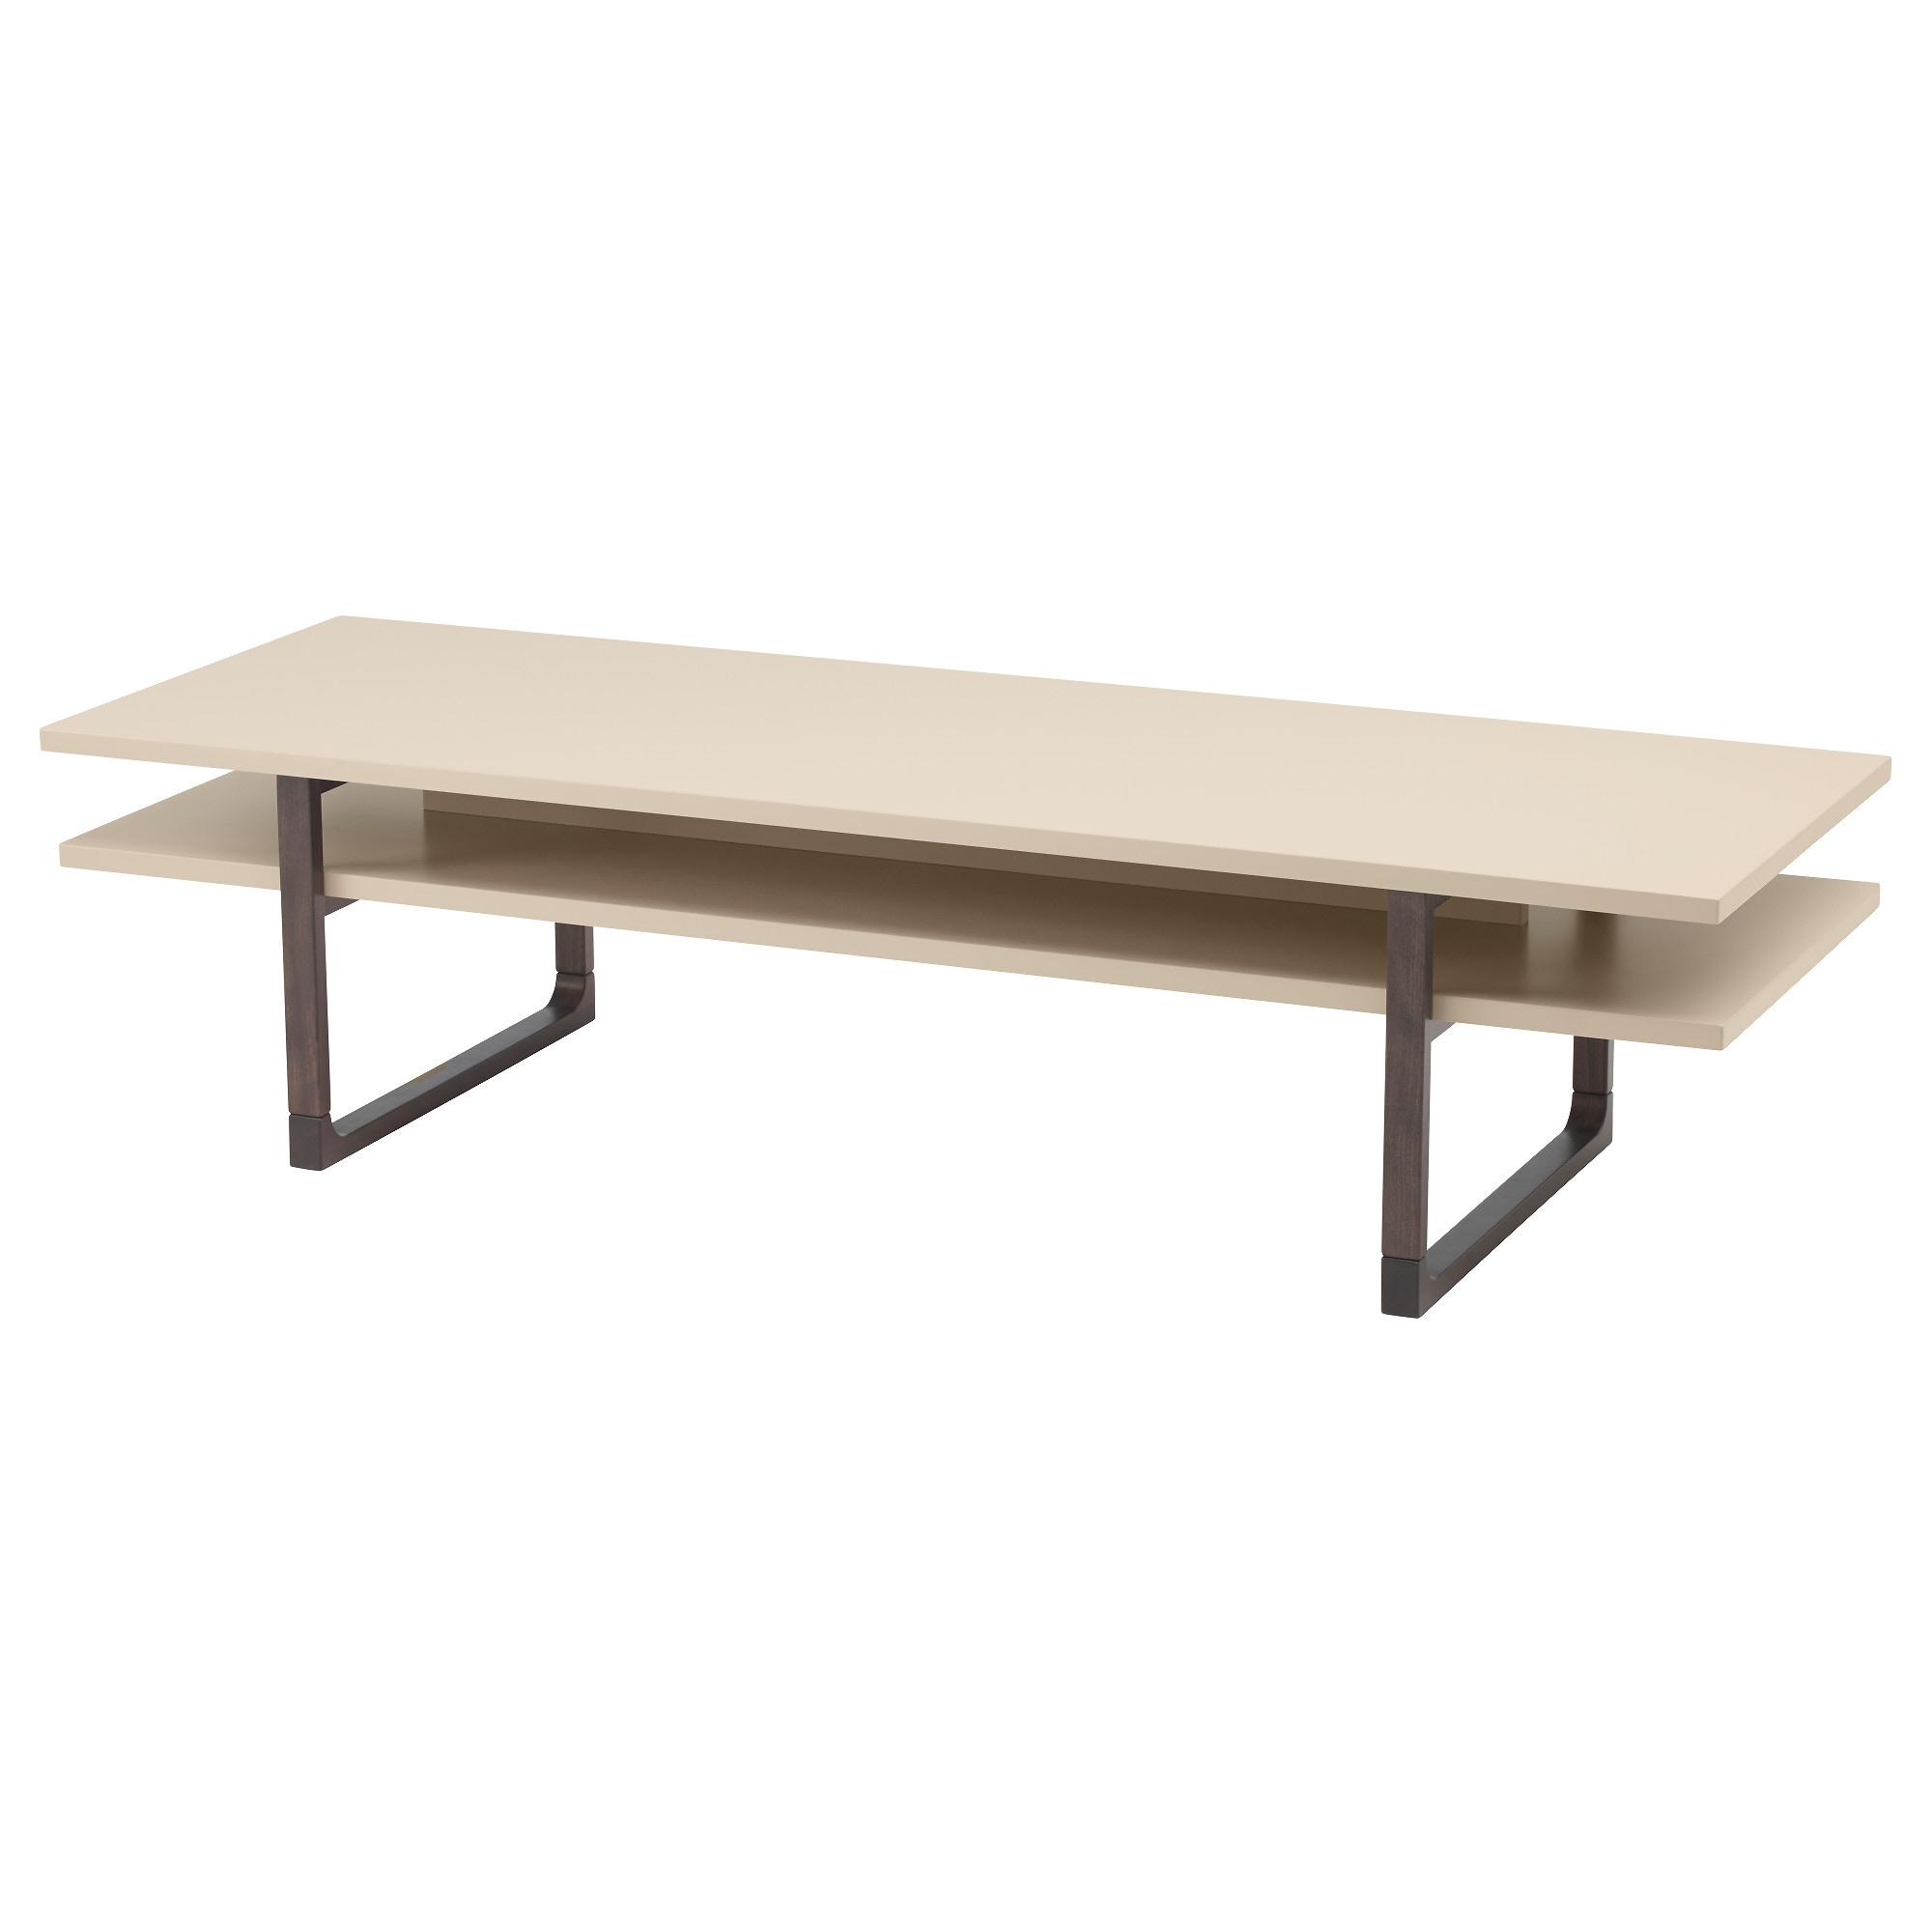 Coffee Table Dimensions Standard rissna coffee table - ikea